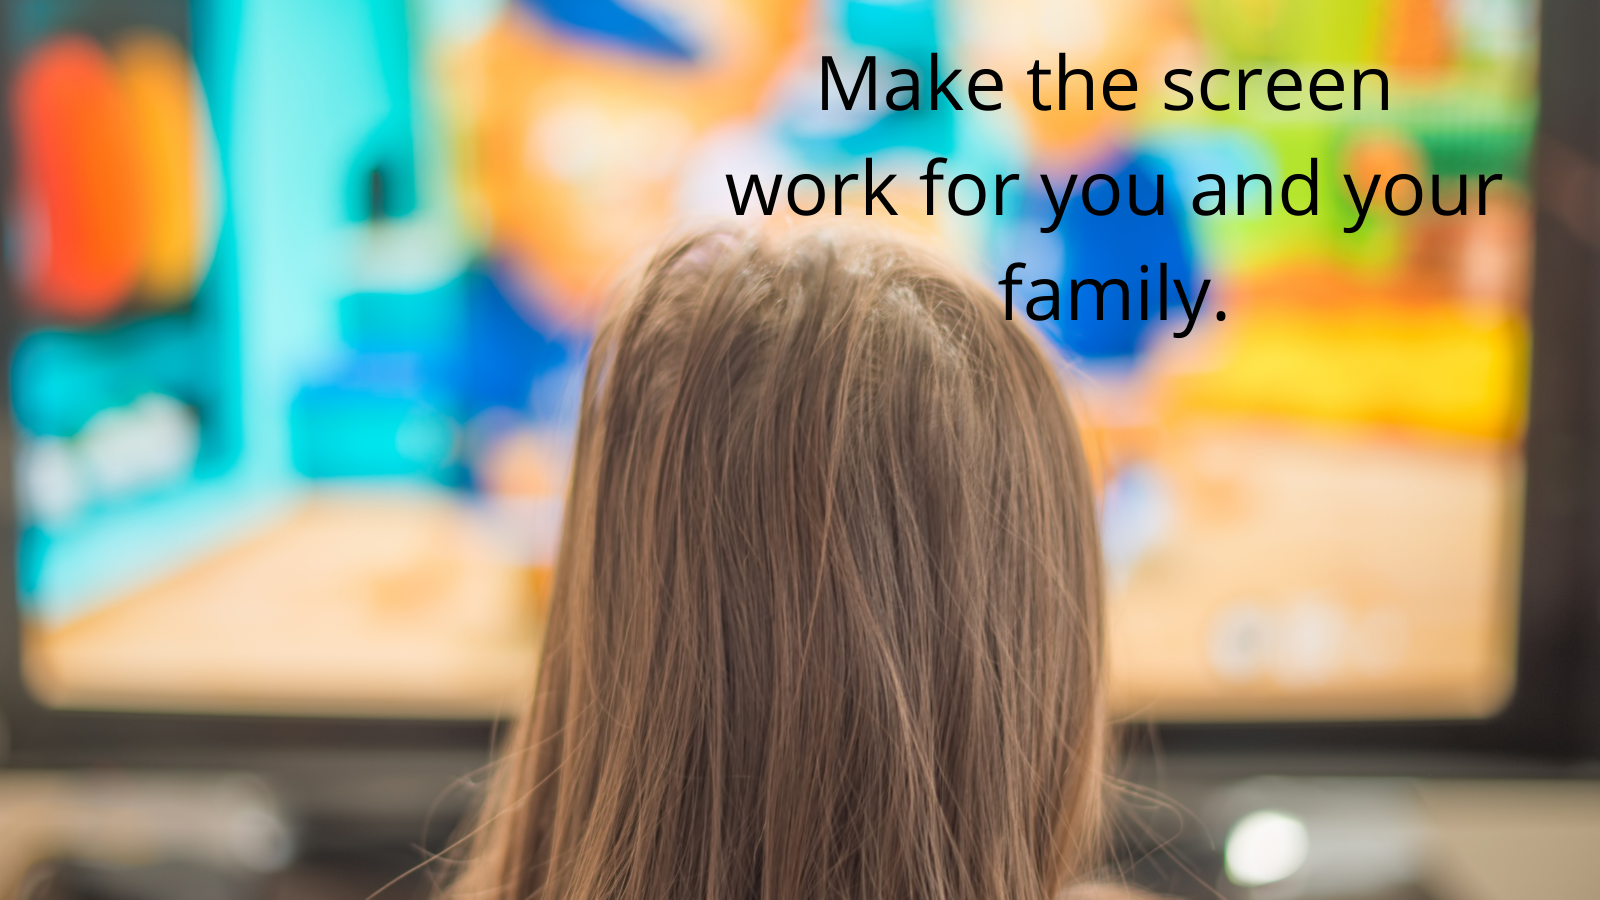 Screen time, device time